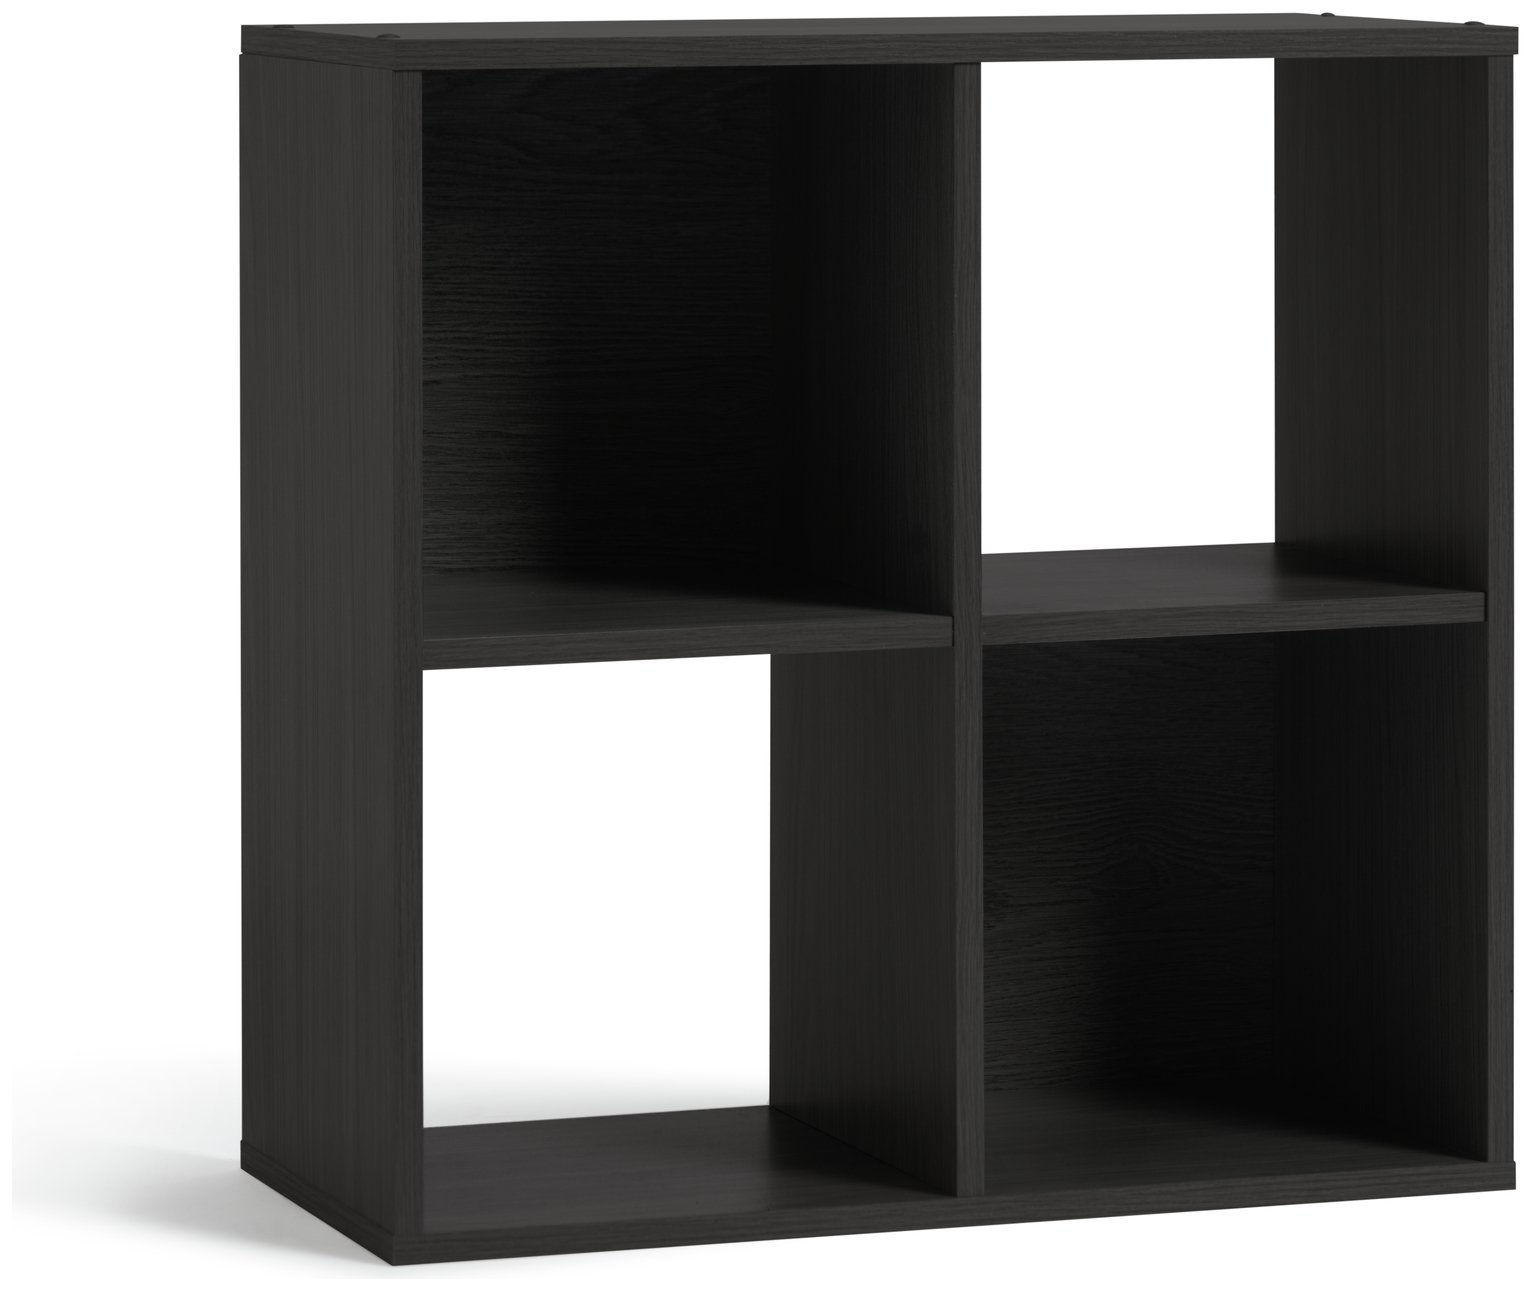 Habitat Squares 4 Cube Storage Unit - Black